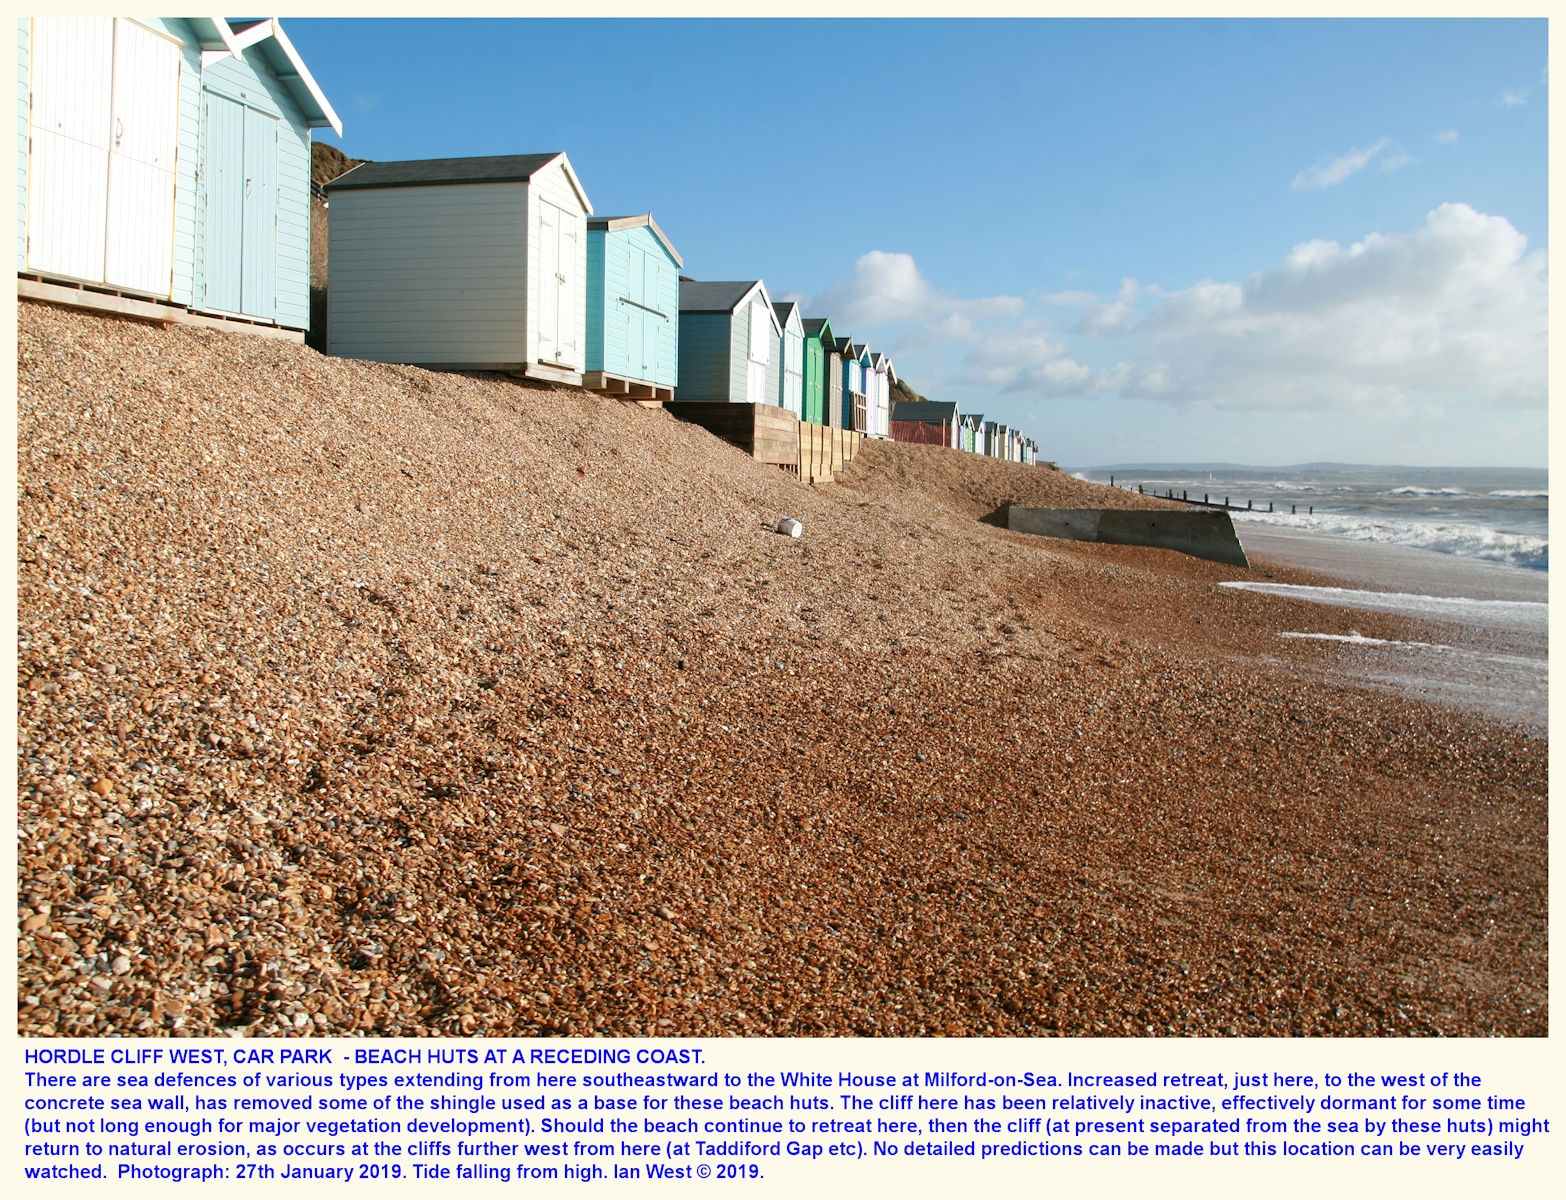 Broader view of coastal erosion and loss of beach material that is taking place in part of the area of huts adjacent to the  so-called, Hordle Cliff West, car park, January 2019